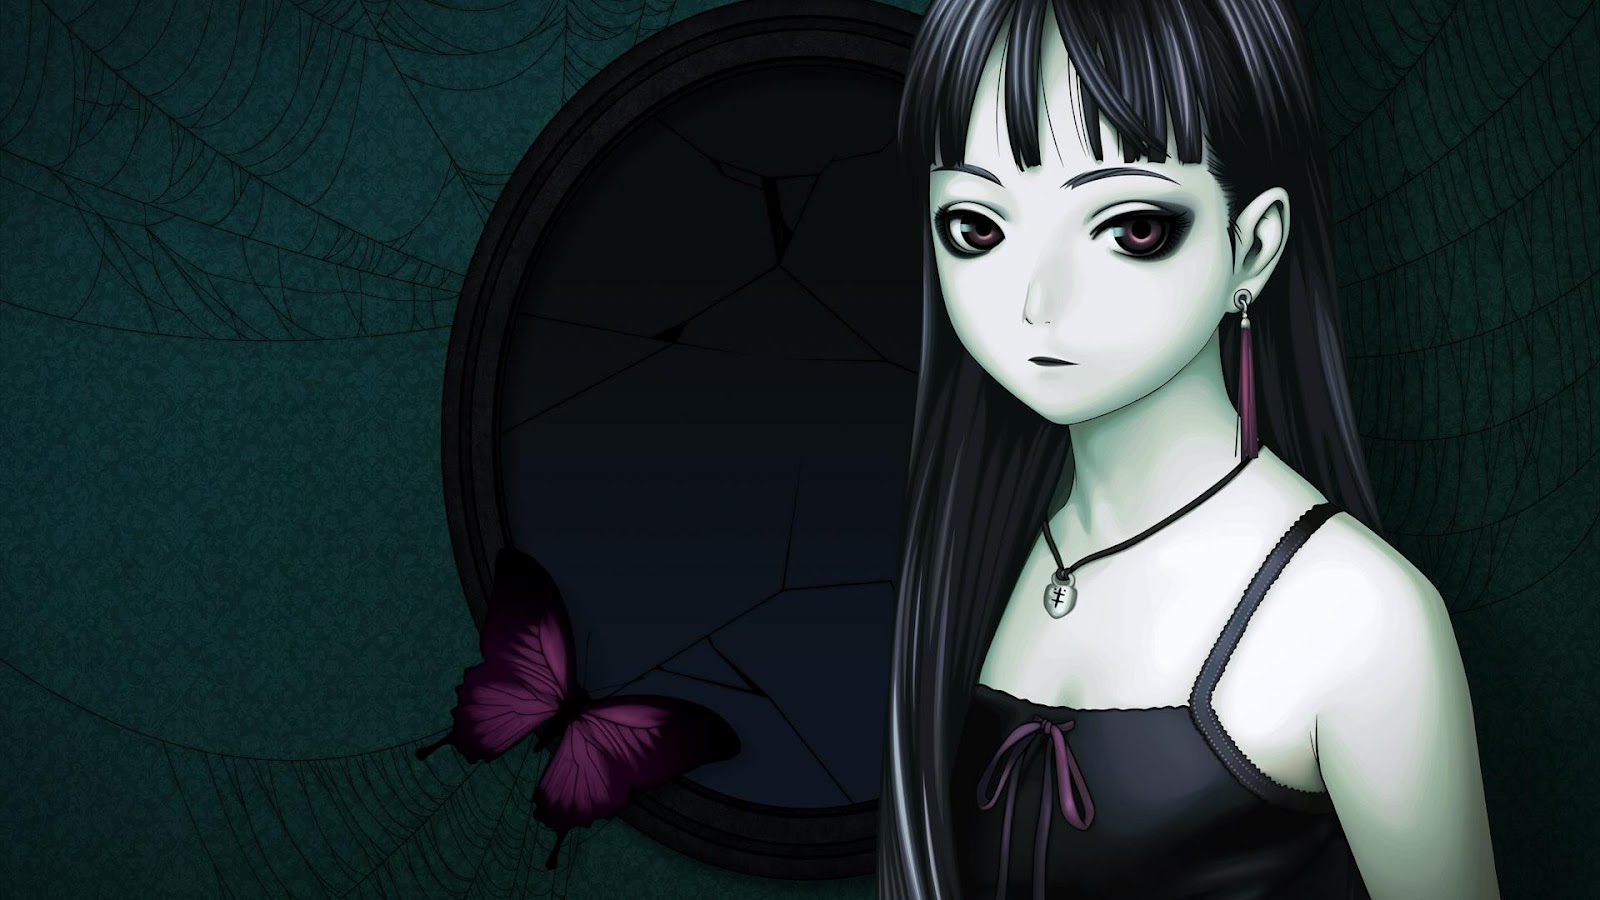 Desktop wallpapers sad mood wallpapers - Sad anime wallpaper ...